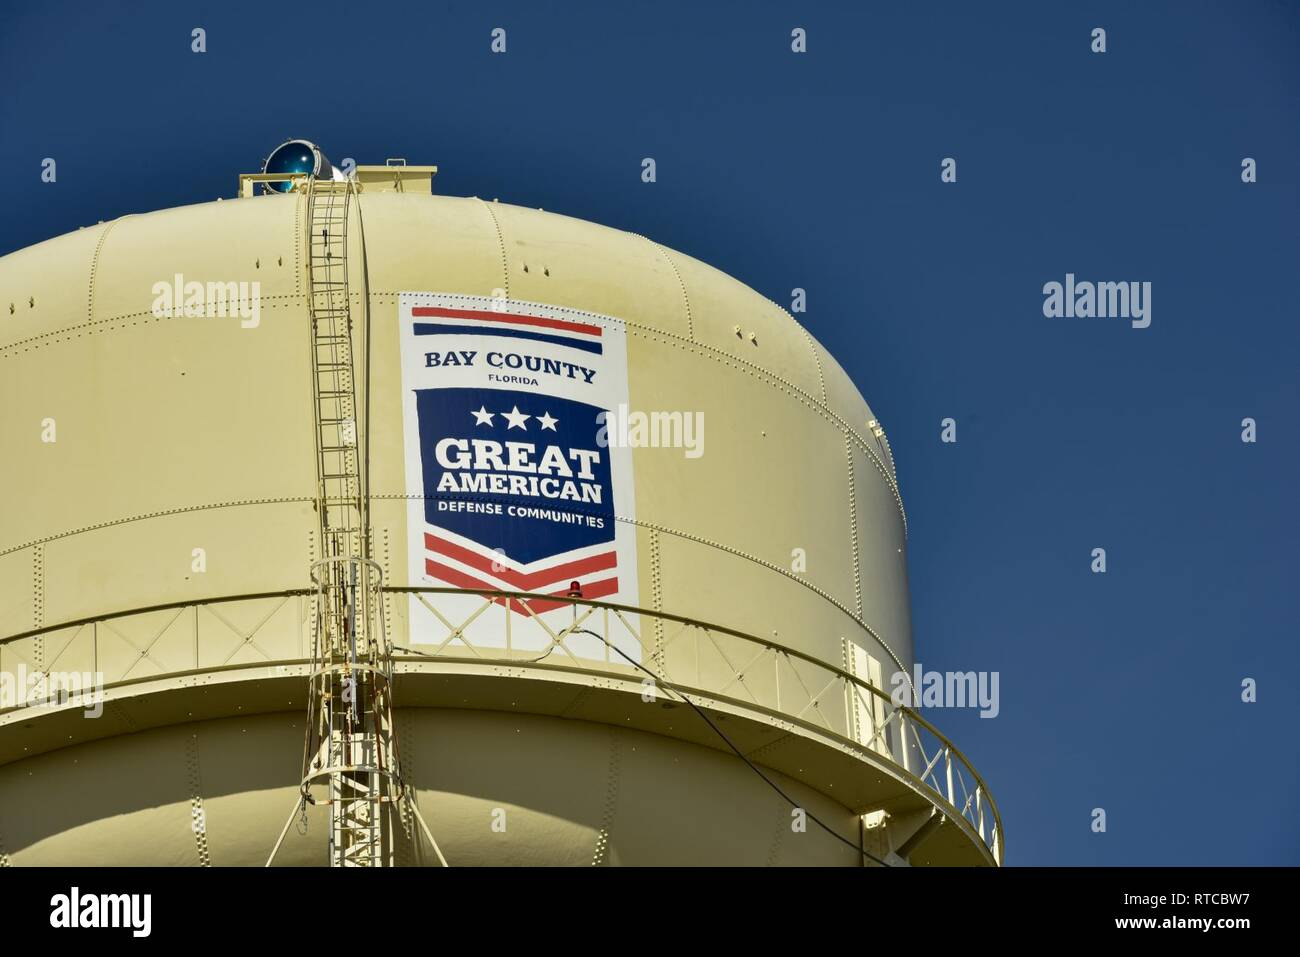 Tyndall Air Force Base's water tower now wears a logo that